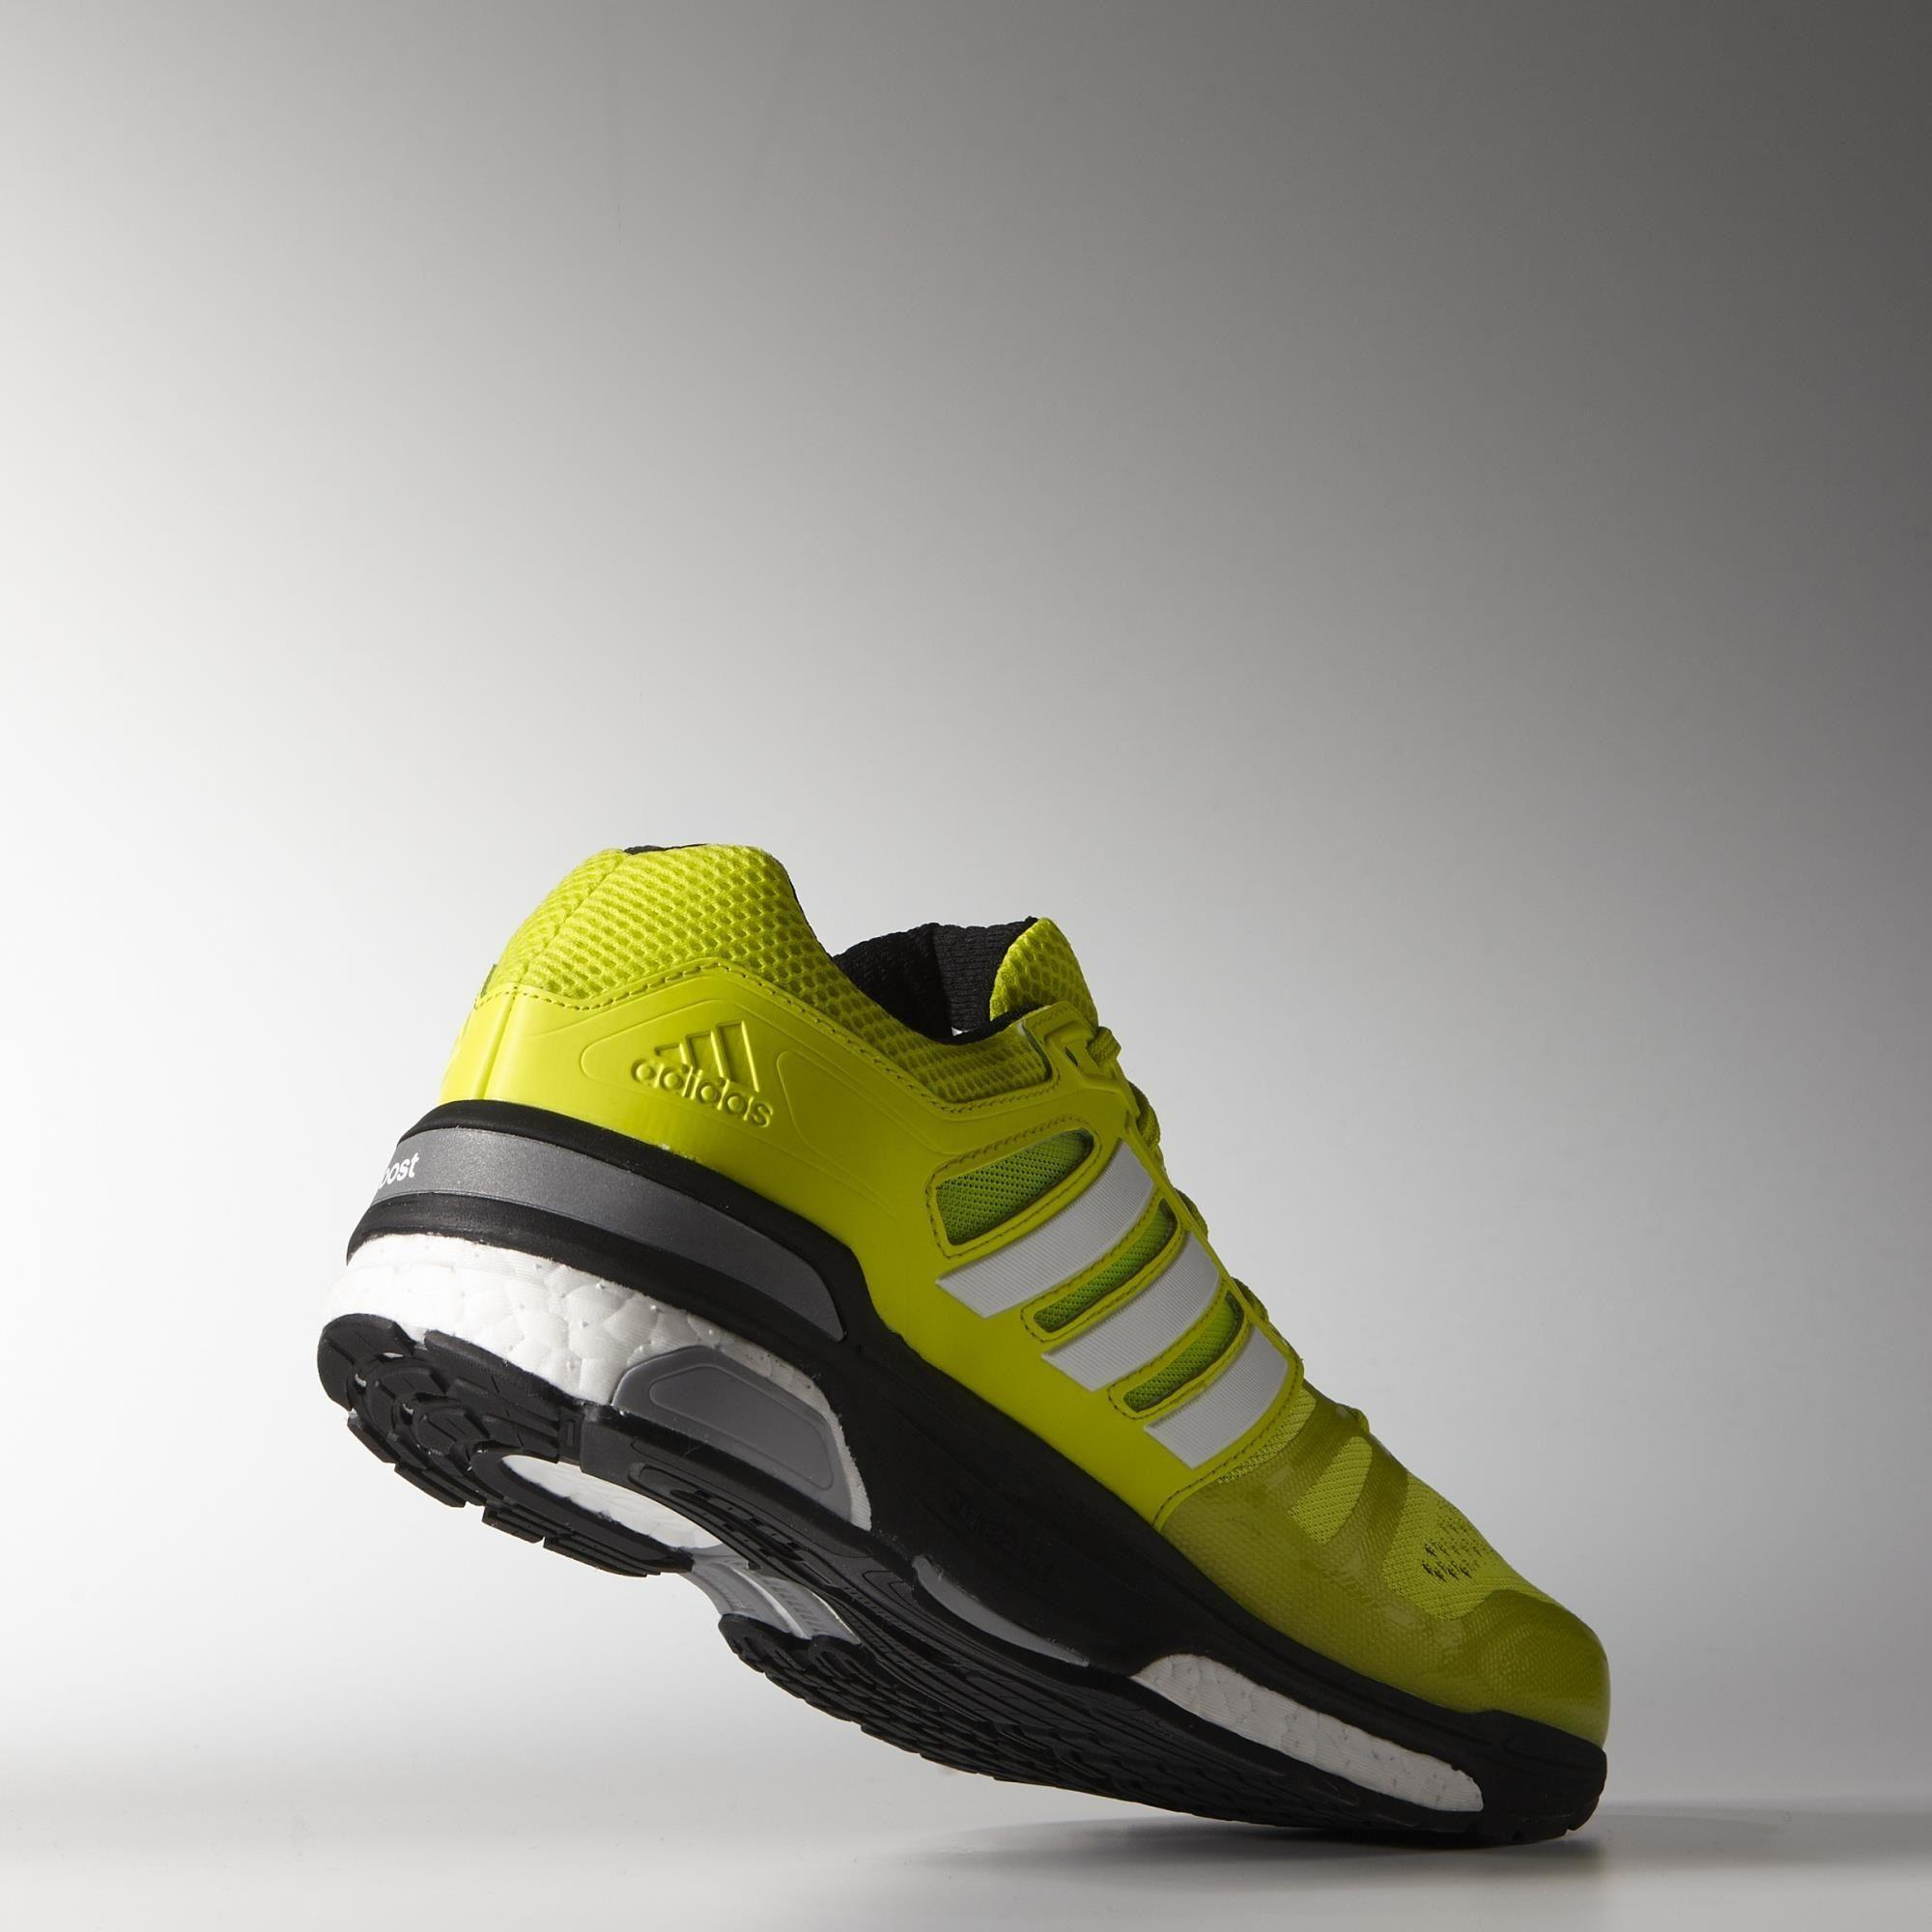 7676dc342 Adidas Mens Supernova Sequence Boost 7 Running Shoes - Yellow White ...